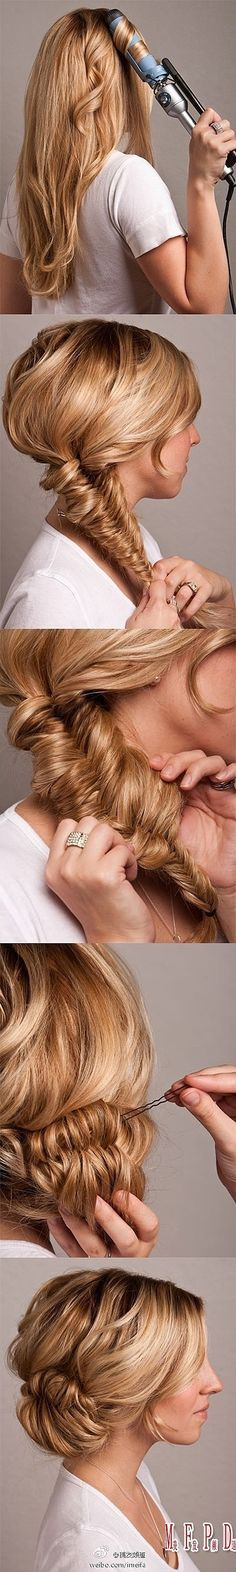 Fishtail updo- I want to do this when my hair is long enough again.